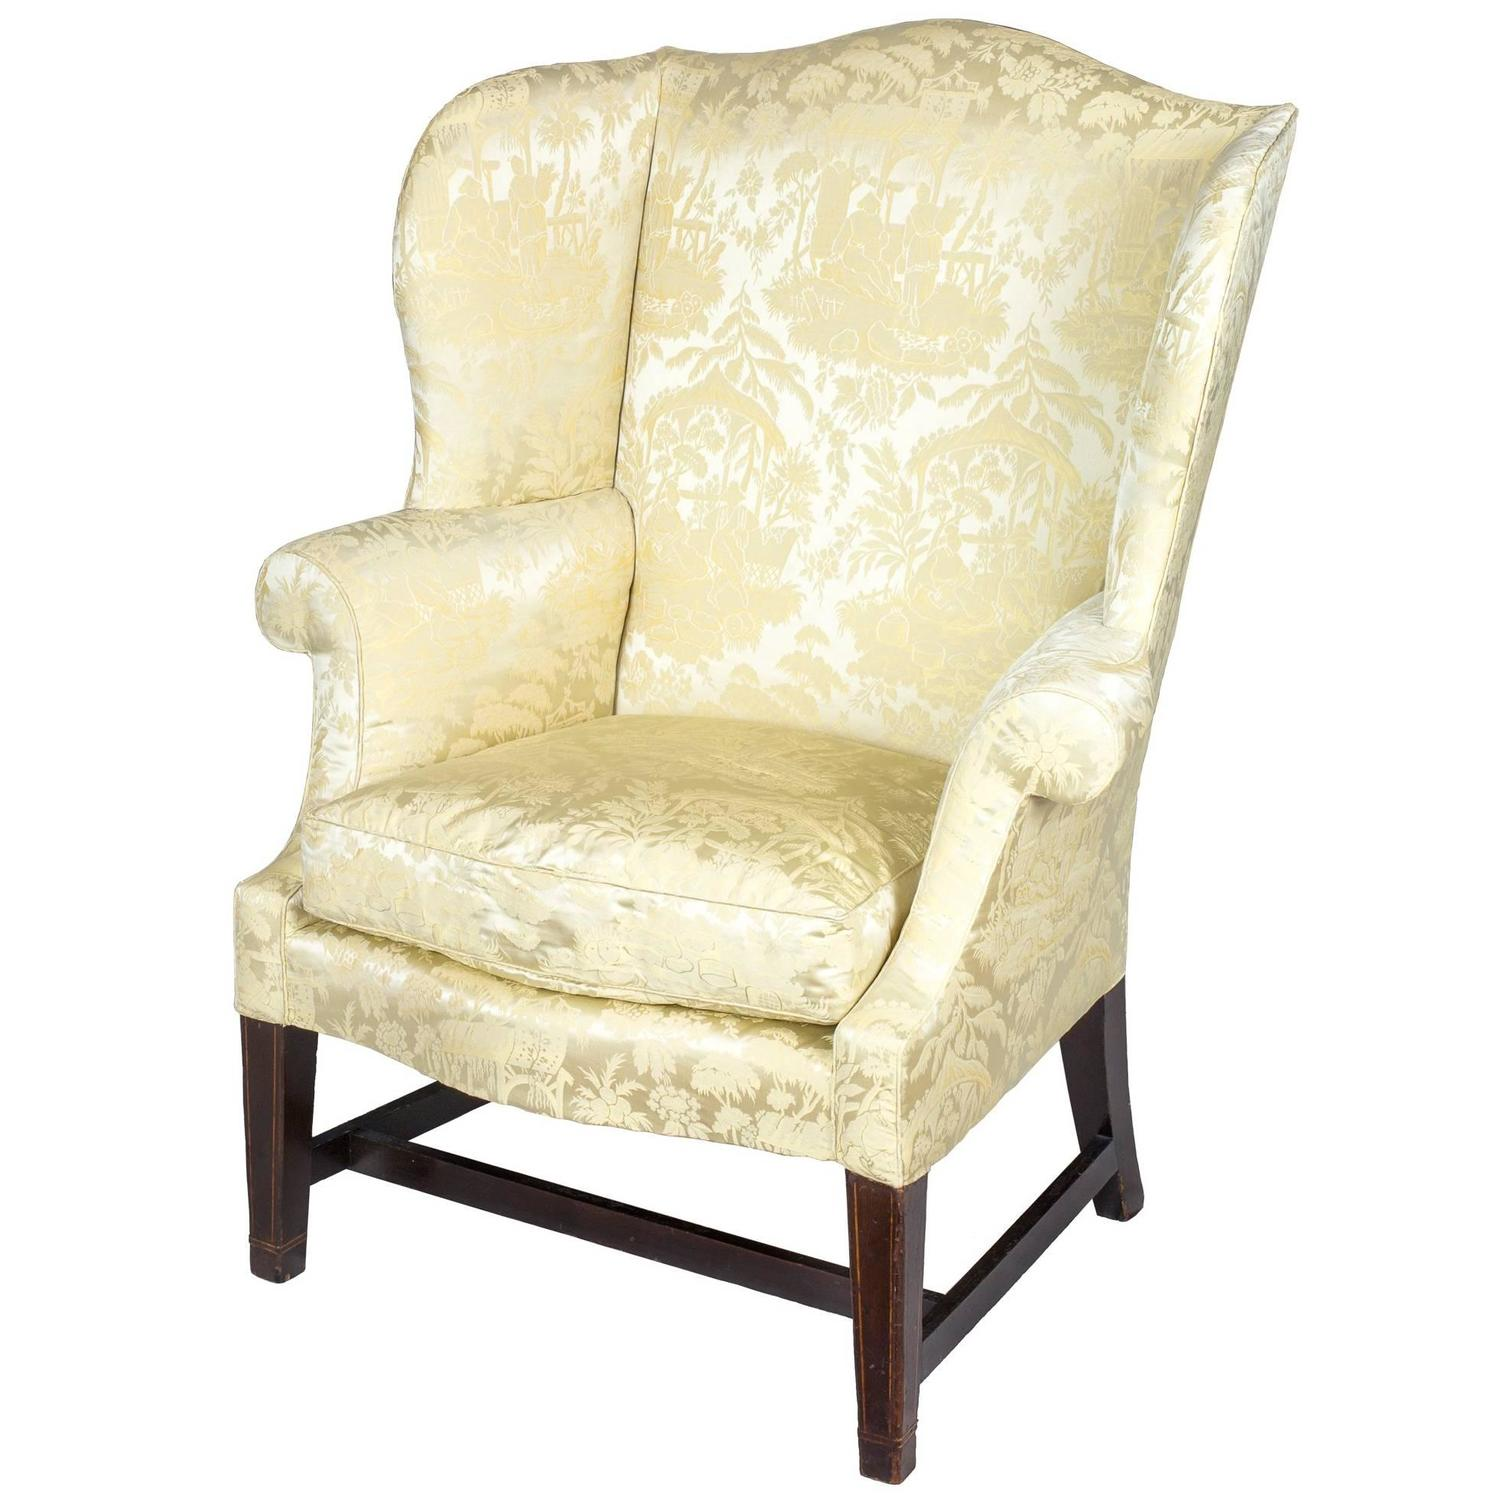 Small Hepplewhite Inlaid Mahogany Wing Chair Philadelphia Israel